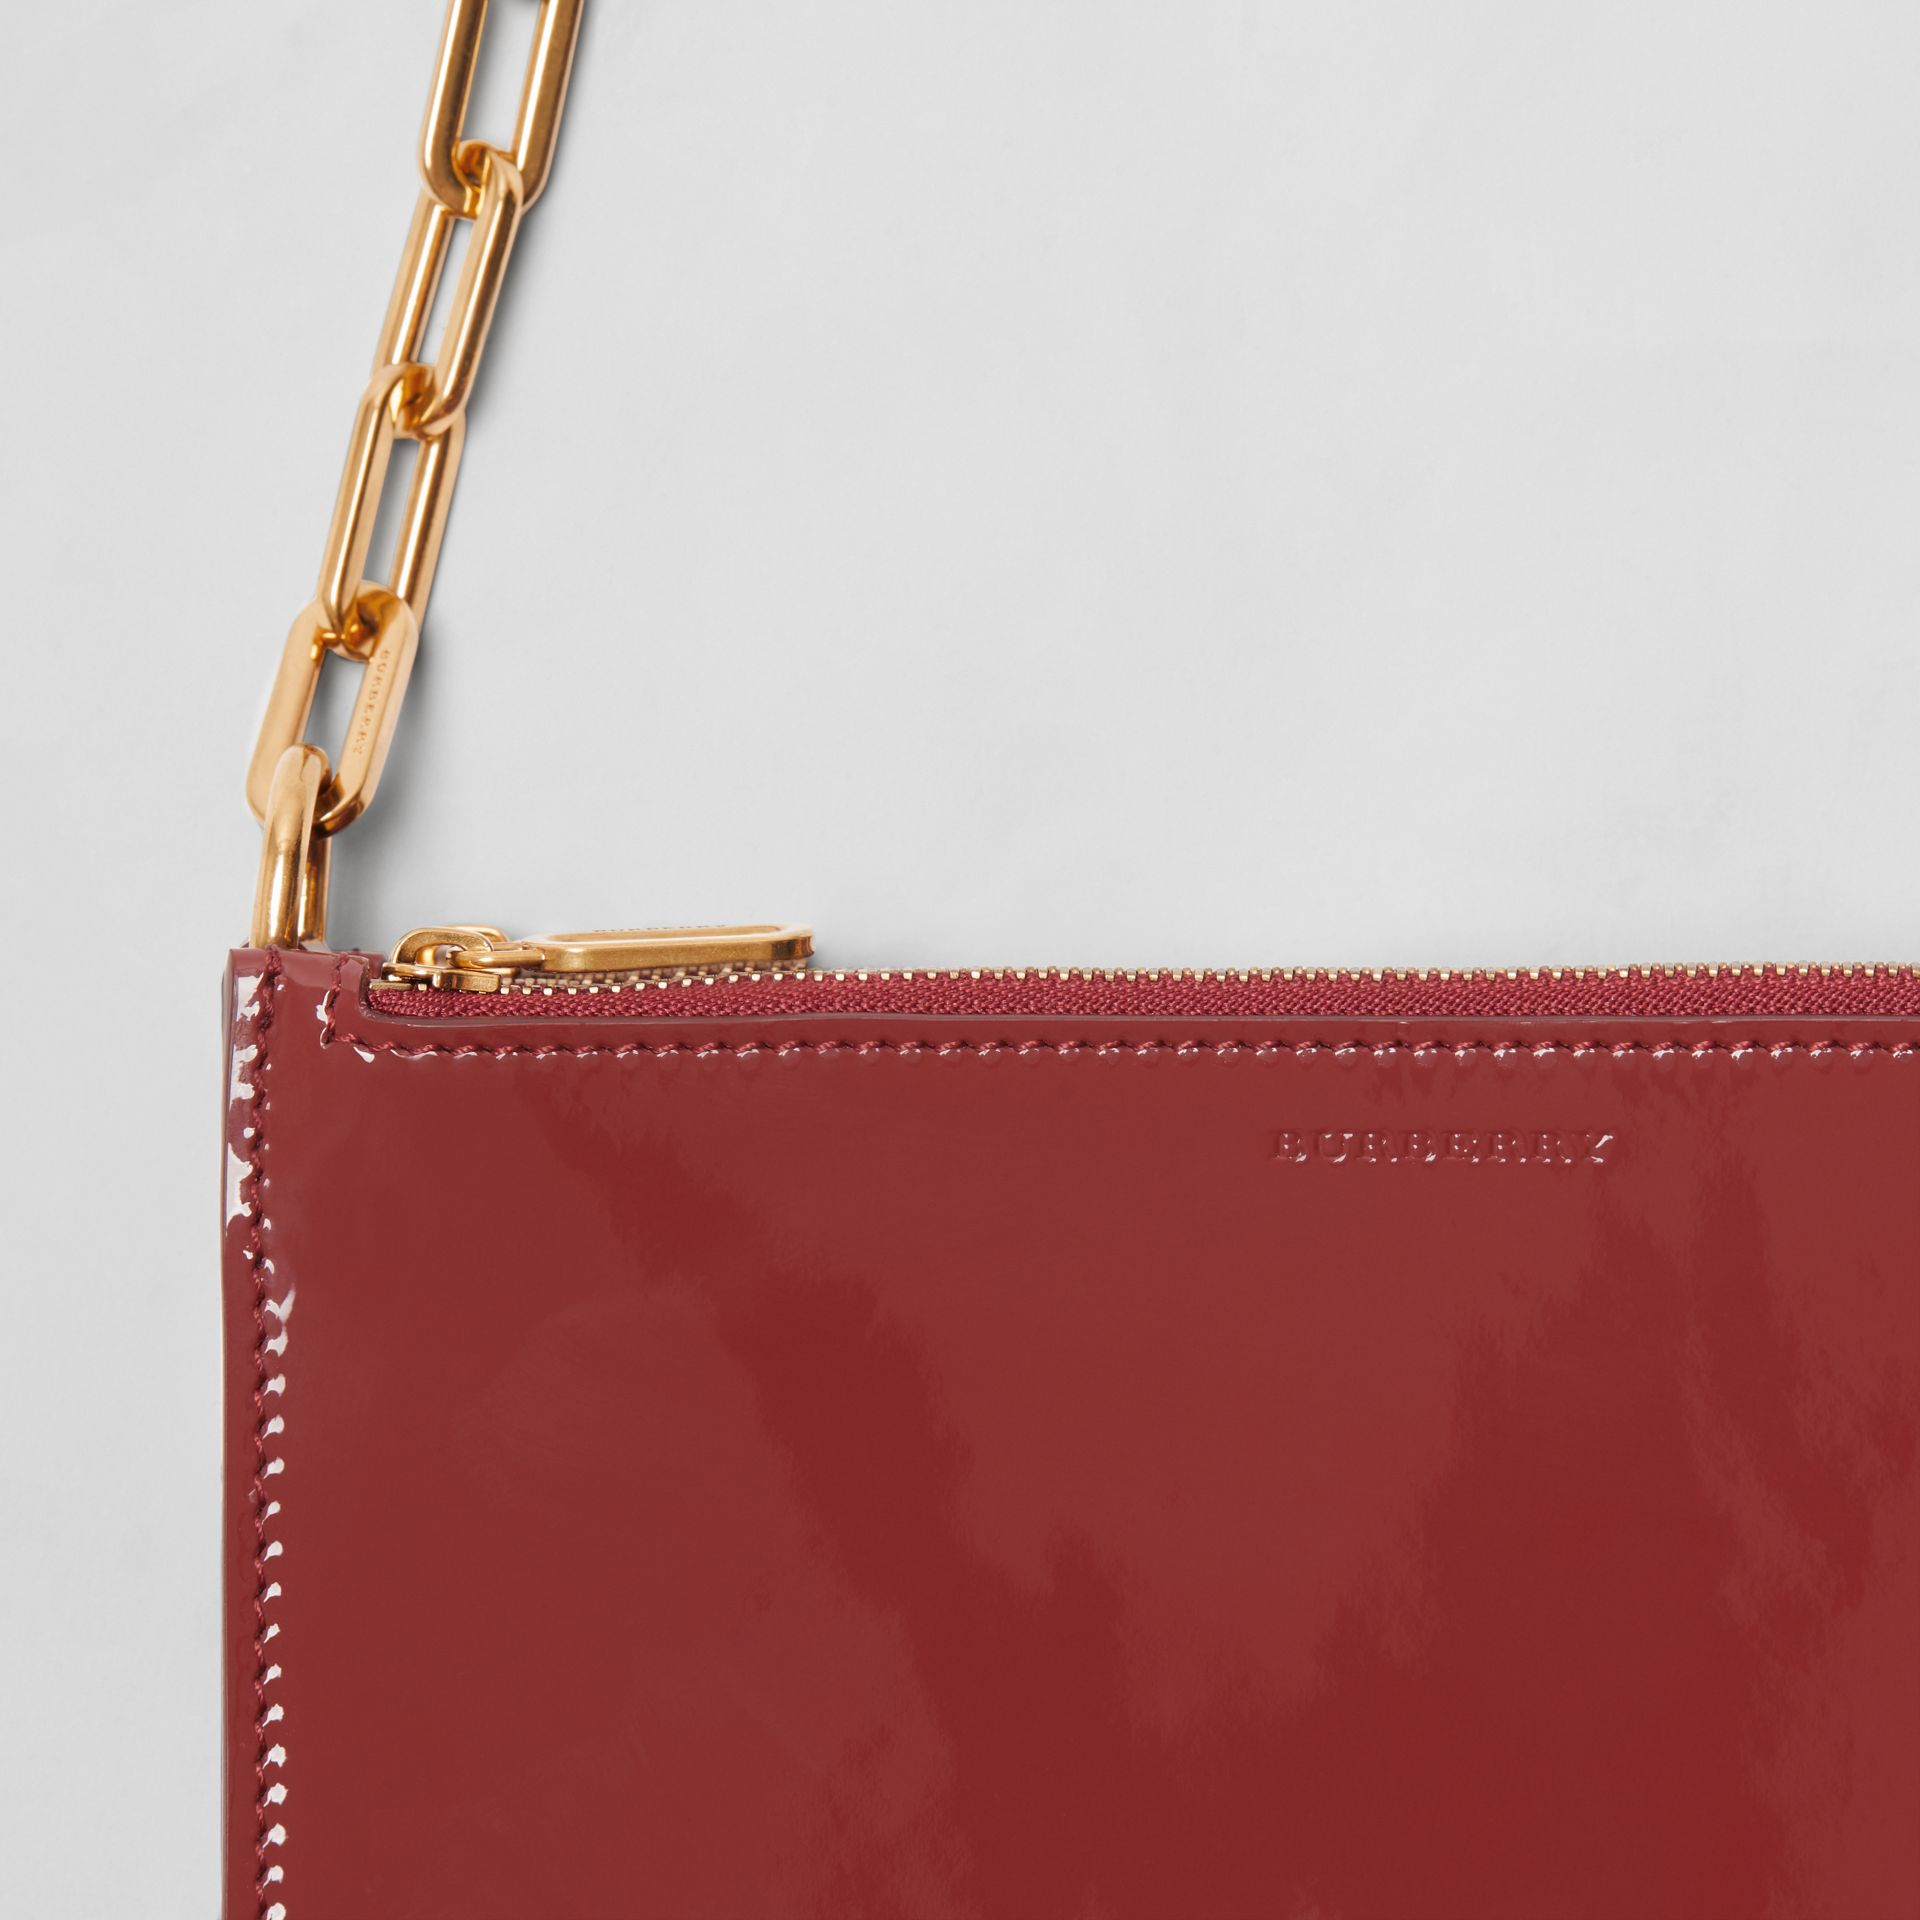 Triple Zip Patent Leather Crossbody Bag in Crimson - Women | Burberry United States - gallery image 1